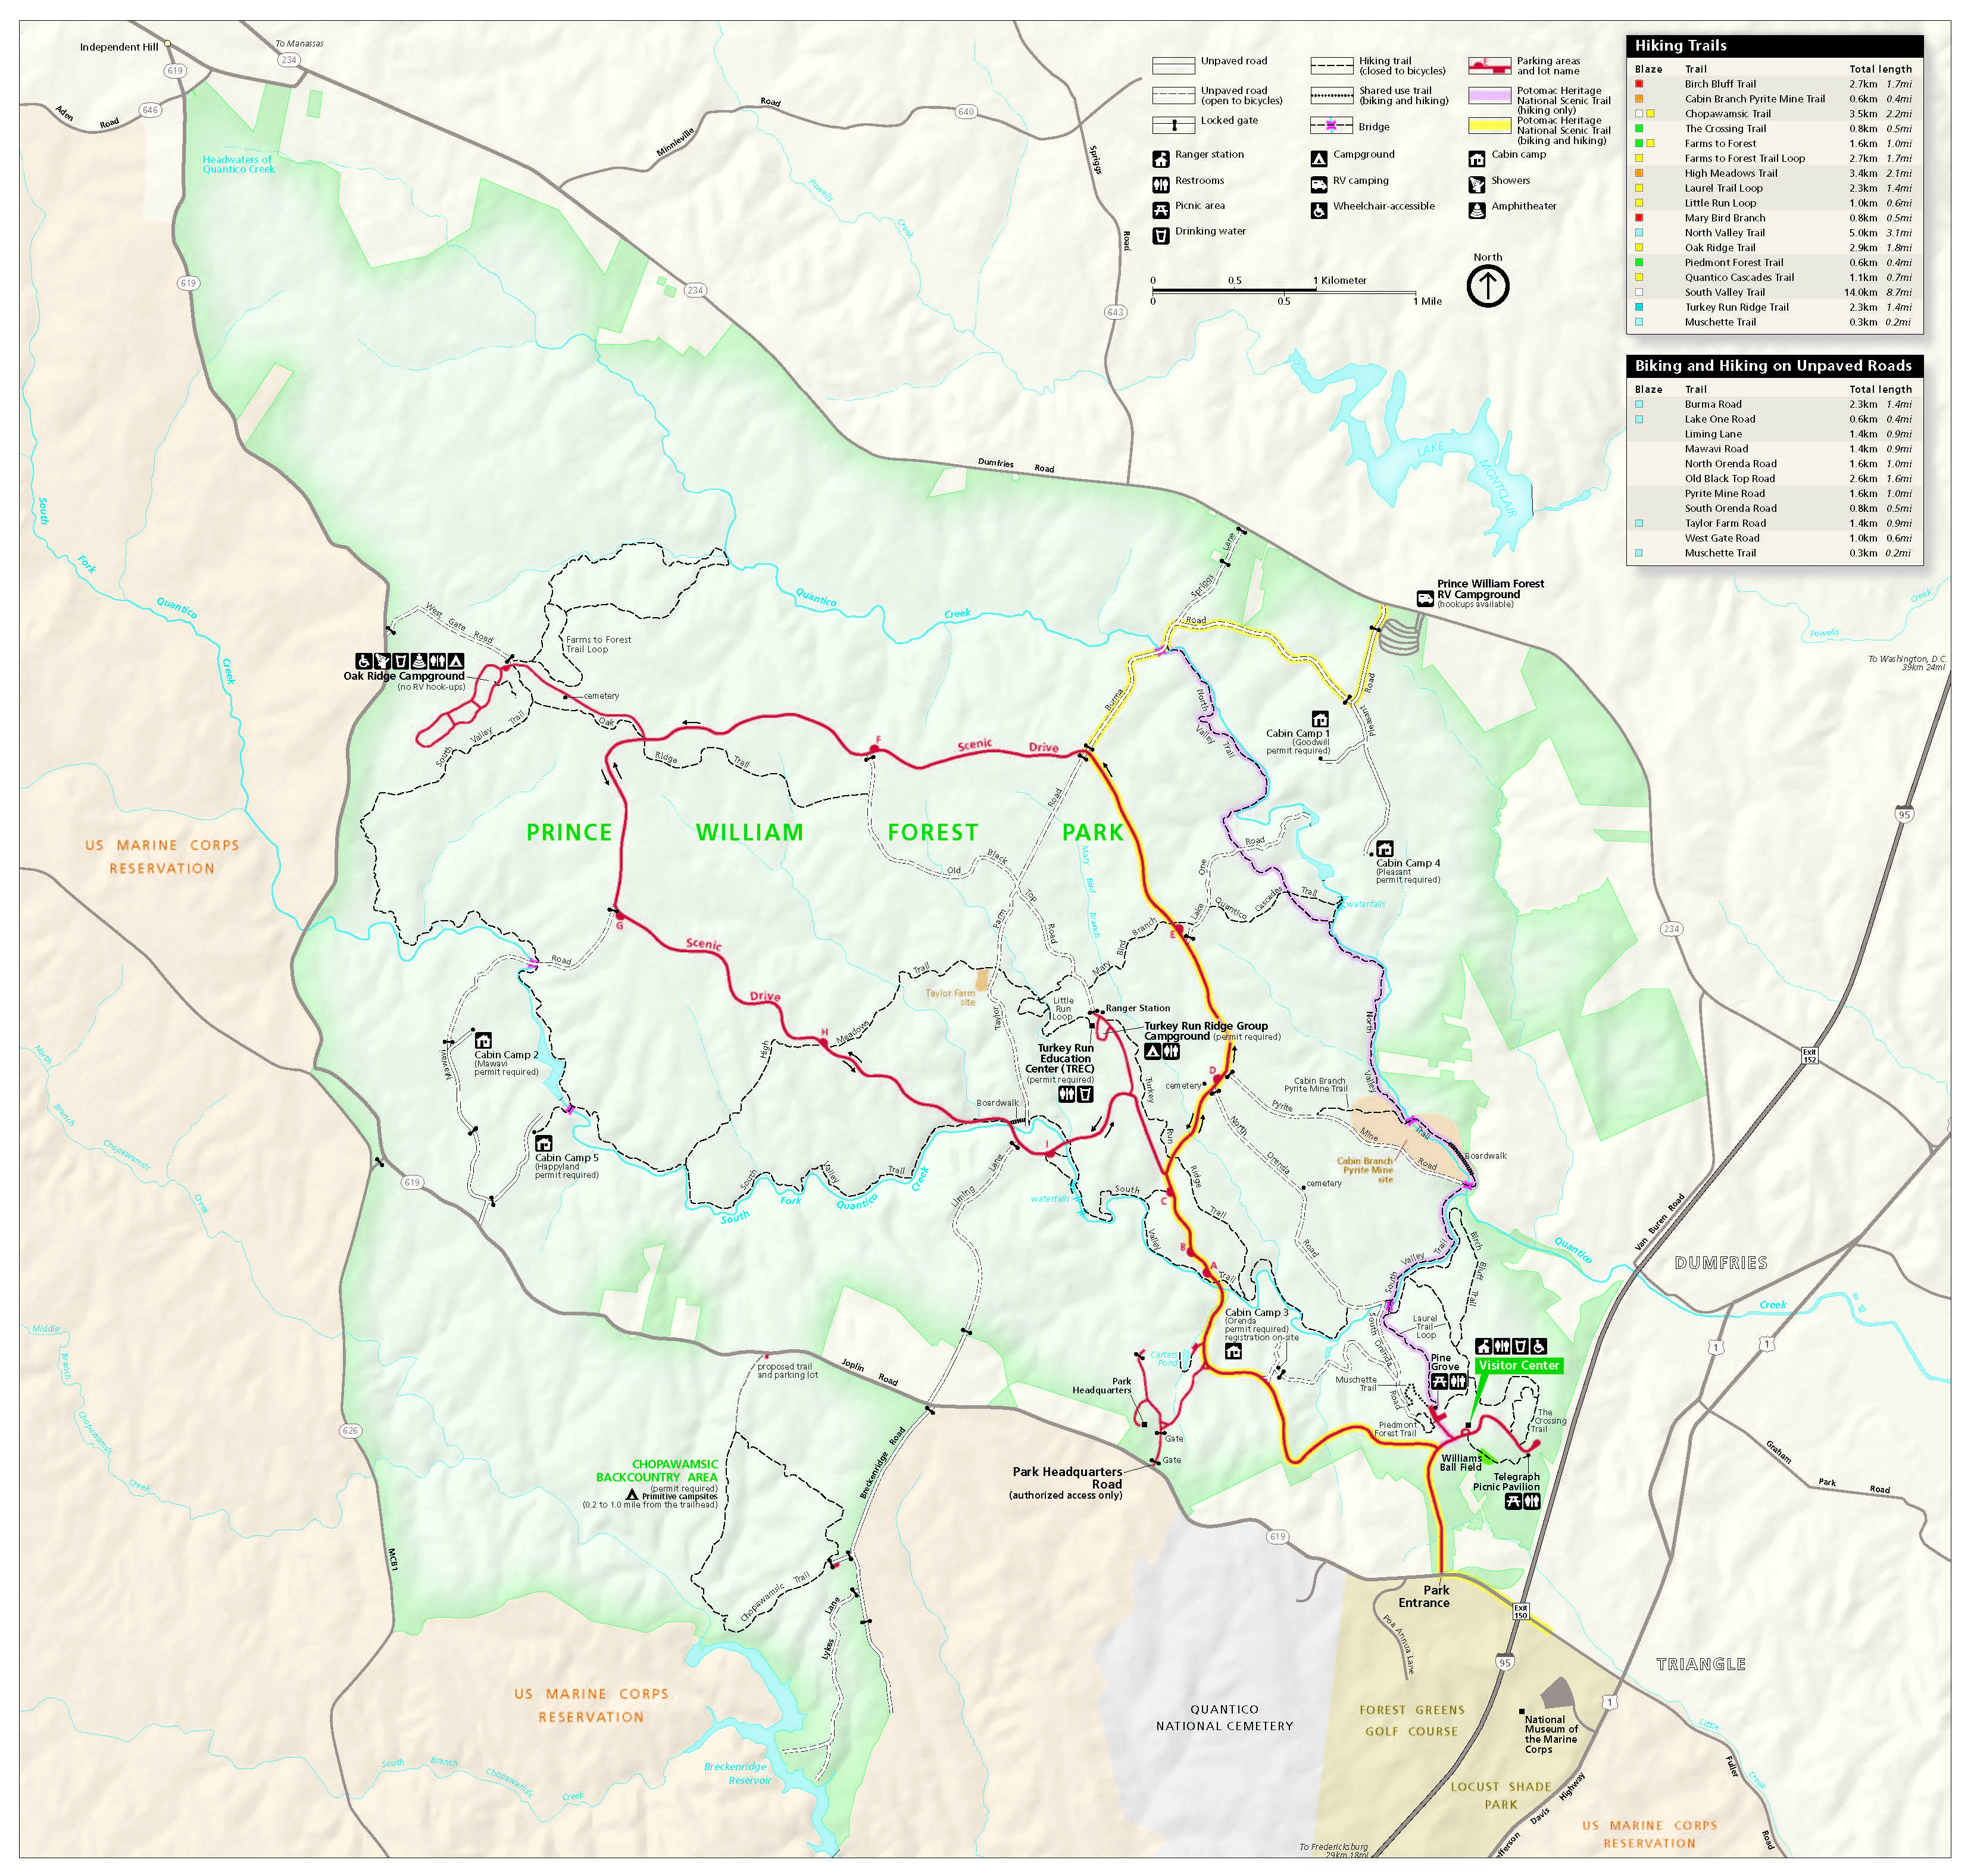 Maps - Prince William Forest Park (U.S. National Park Service)